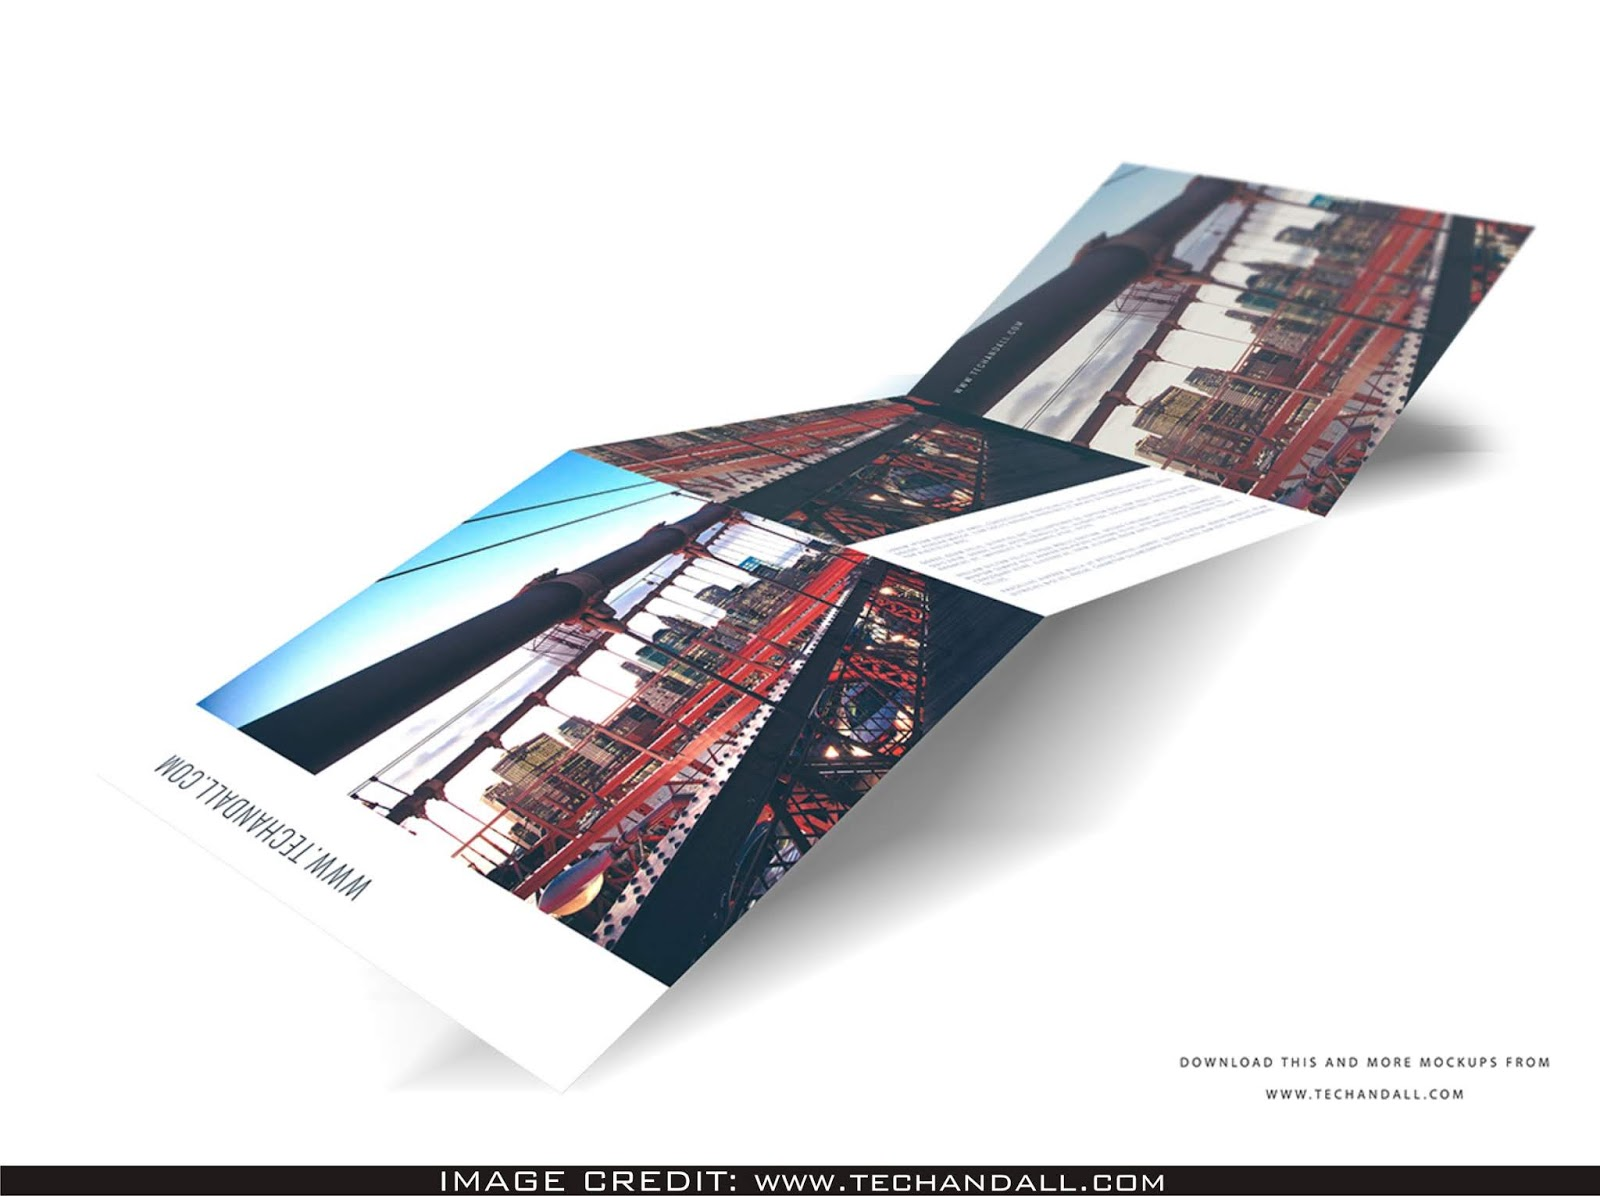 8x8 tri-fold brochure mockup free download